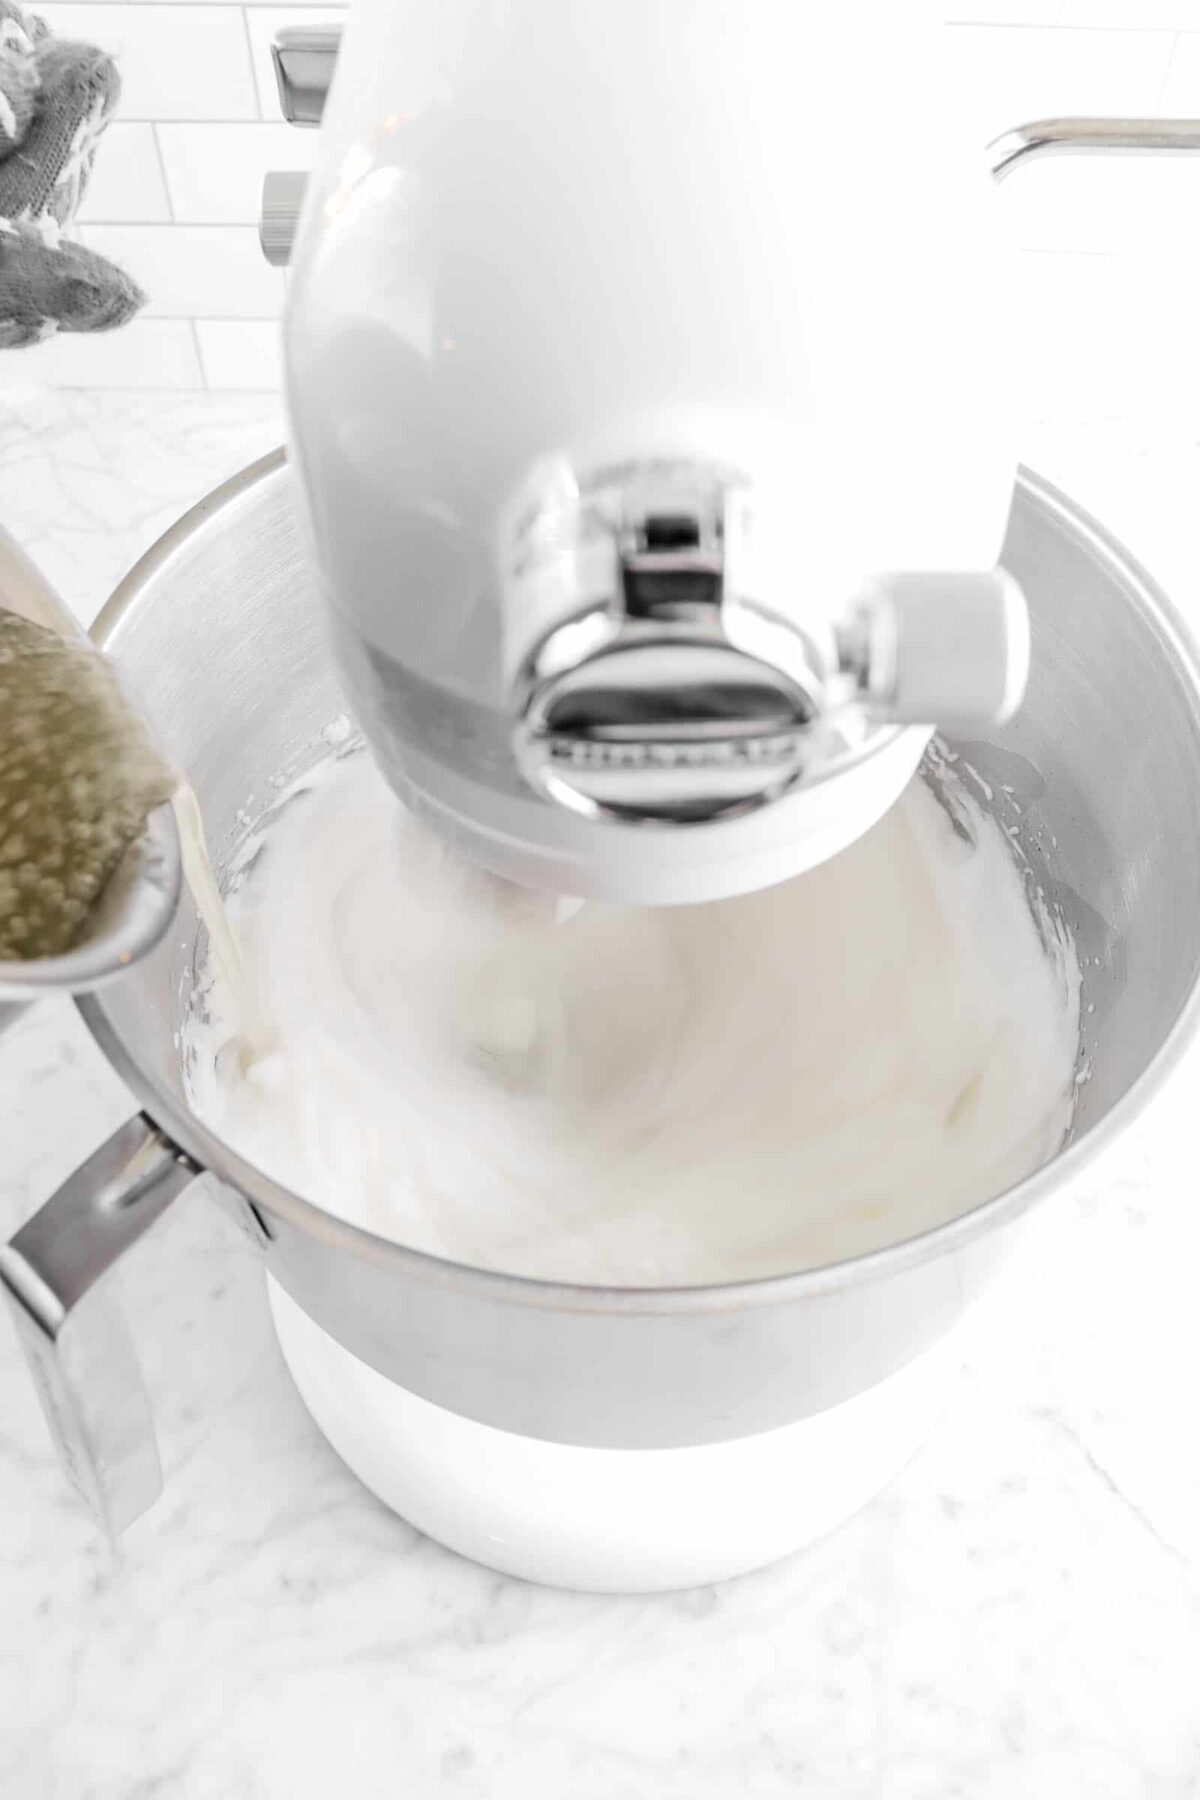 sugar syrup being poured into egg whites